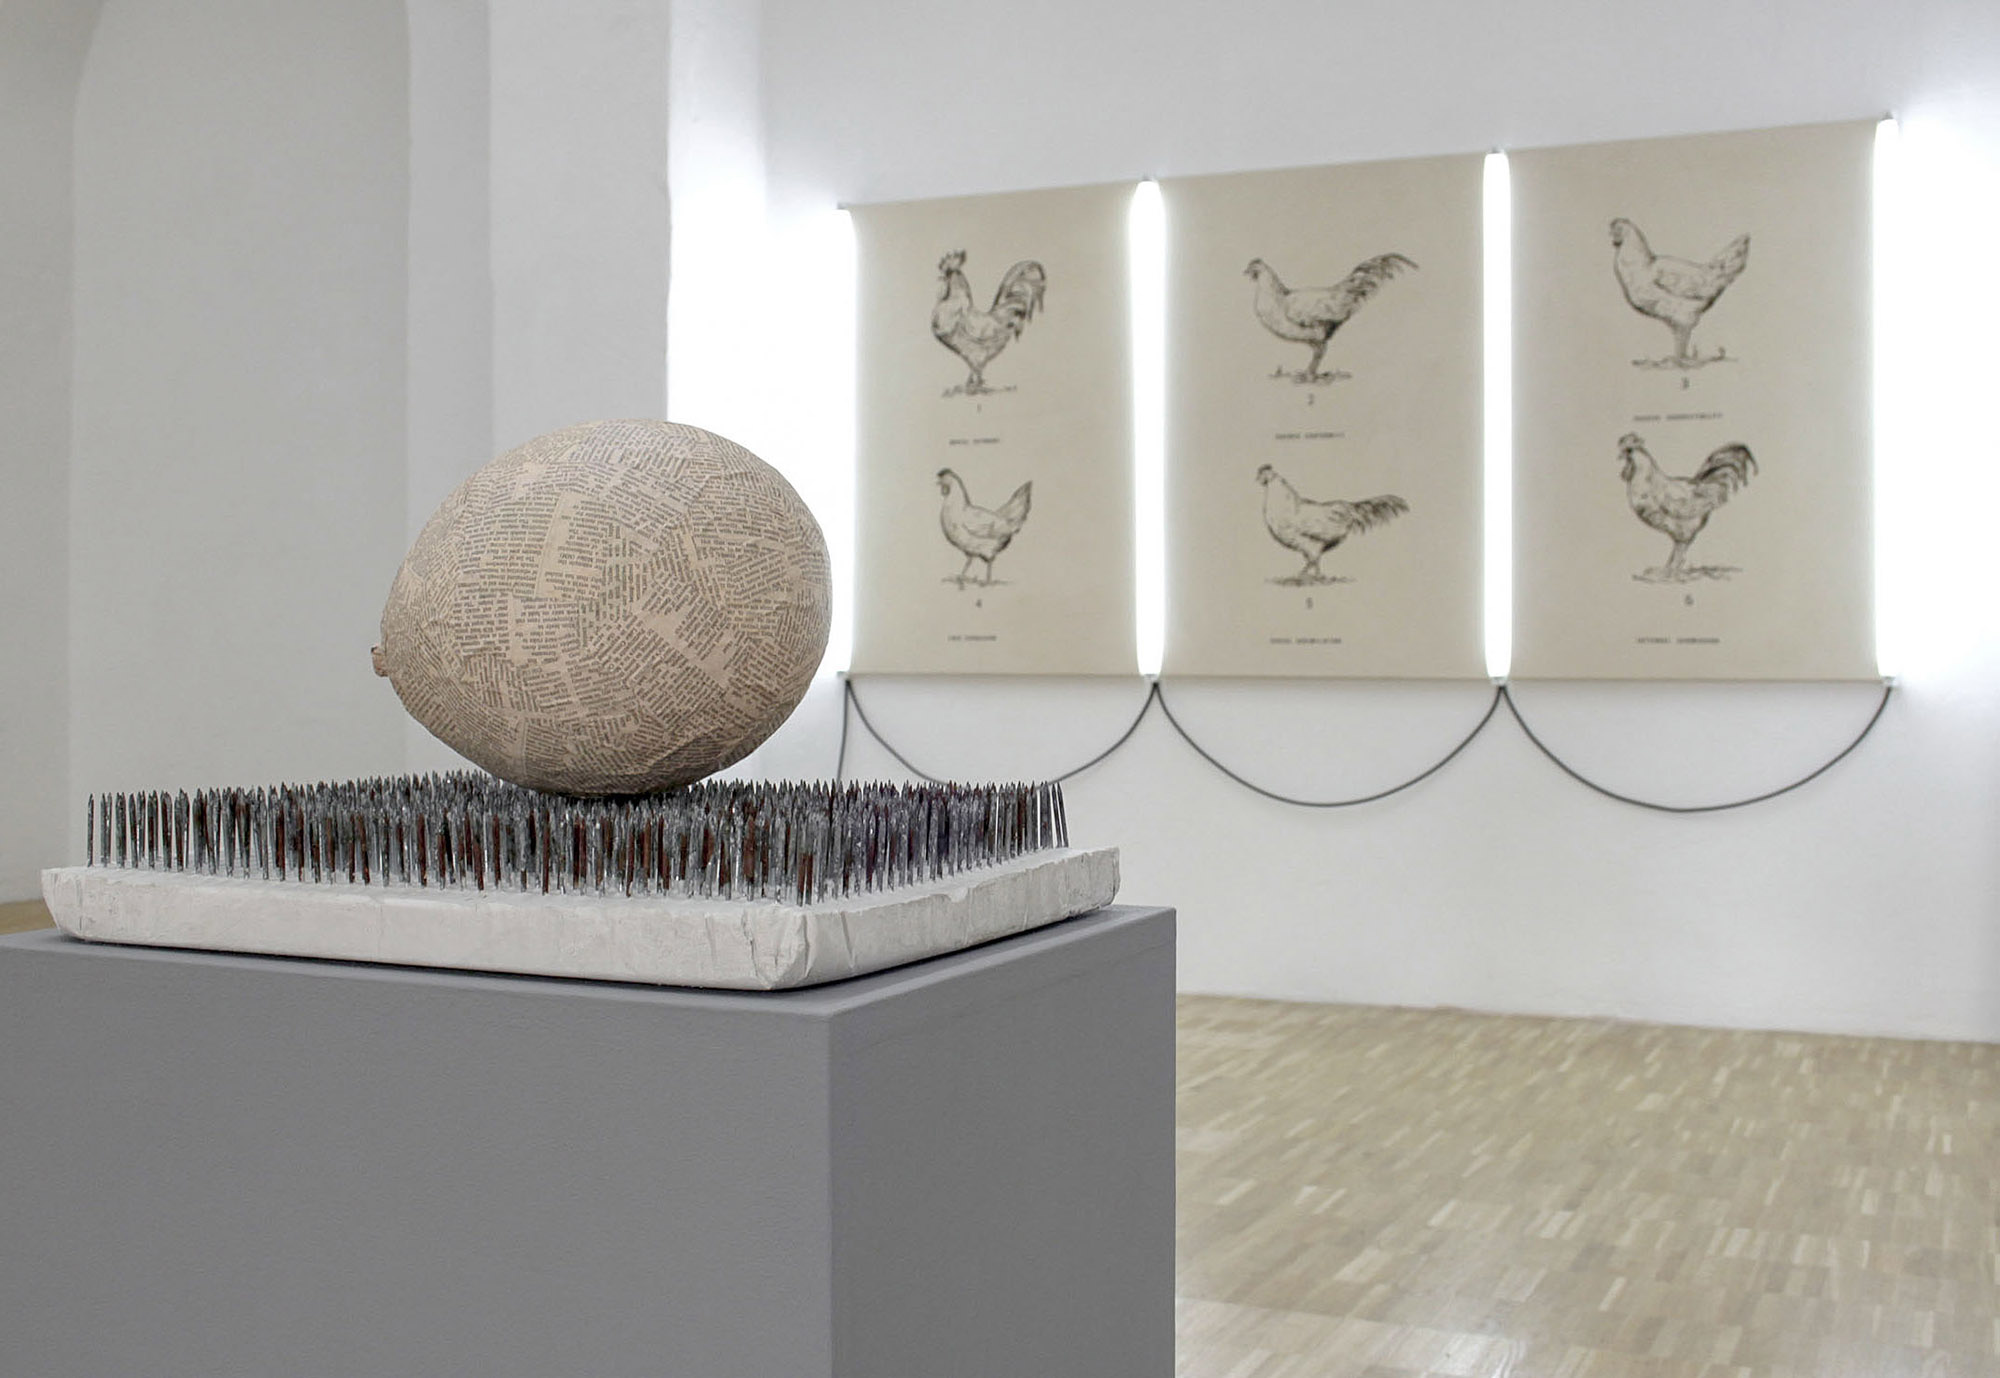 Marcus Kleinfeld, FORCES / SOCIAL FORMATION, 2011 Installation view